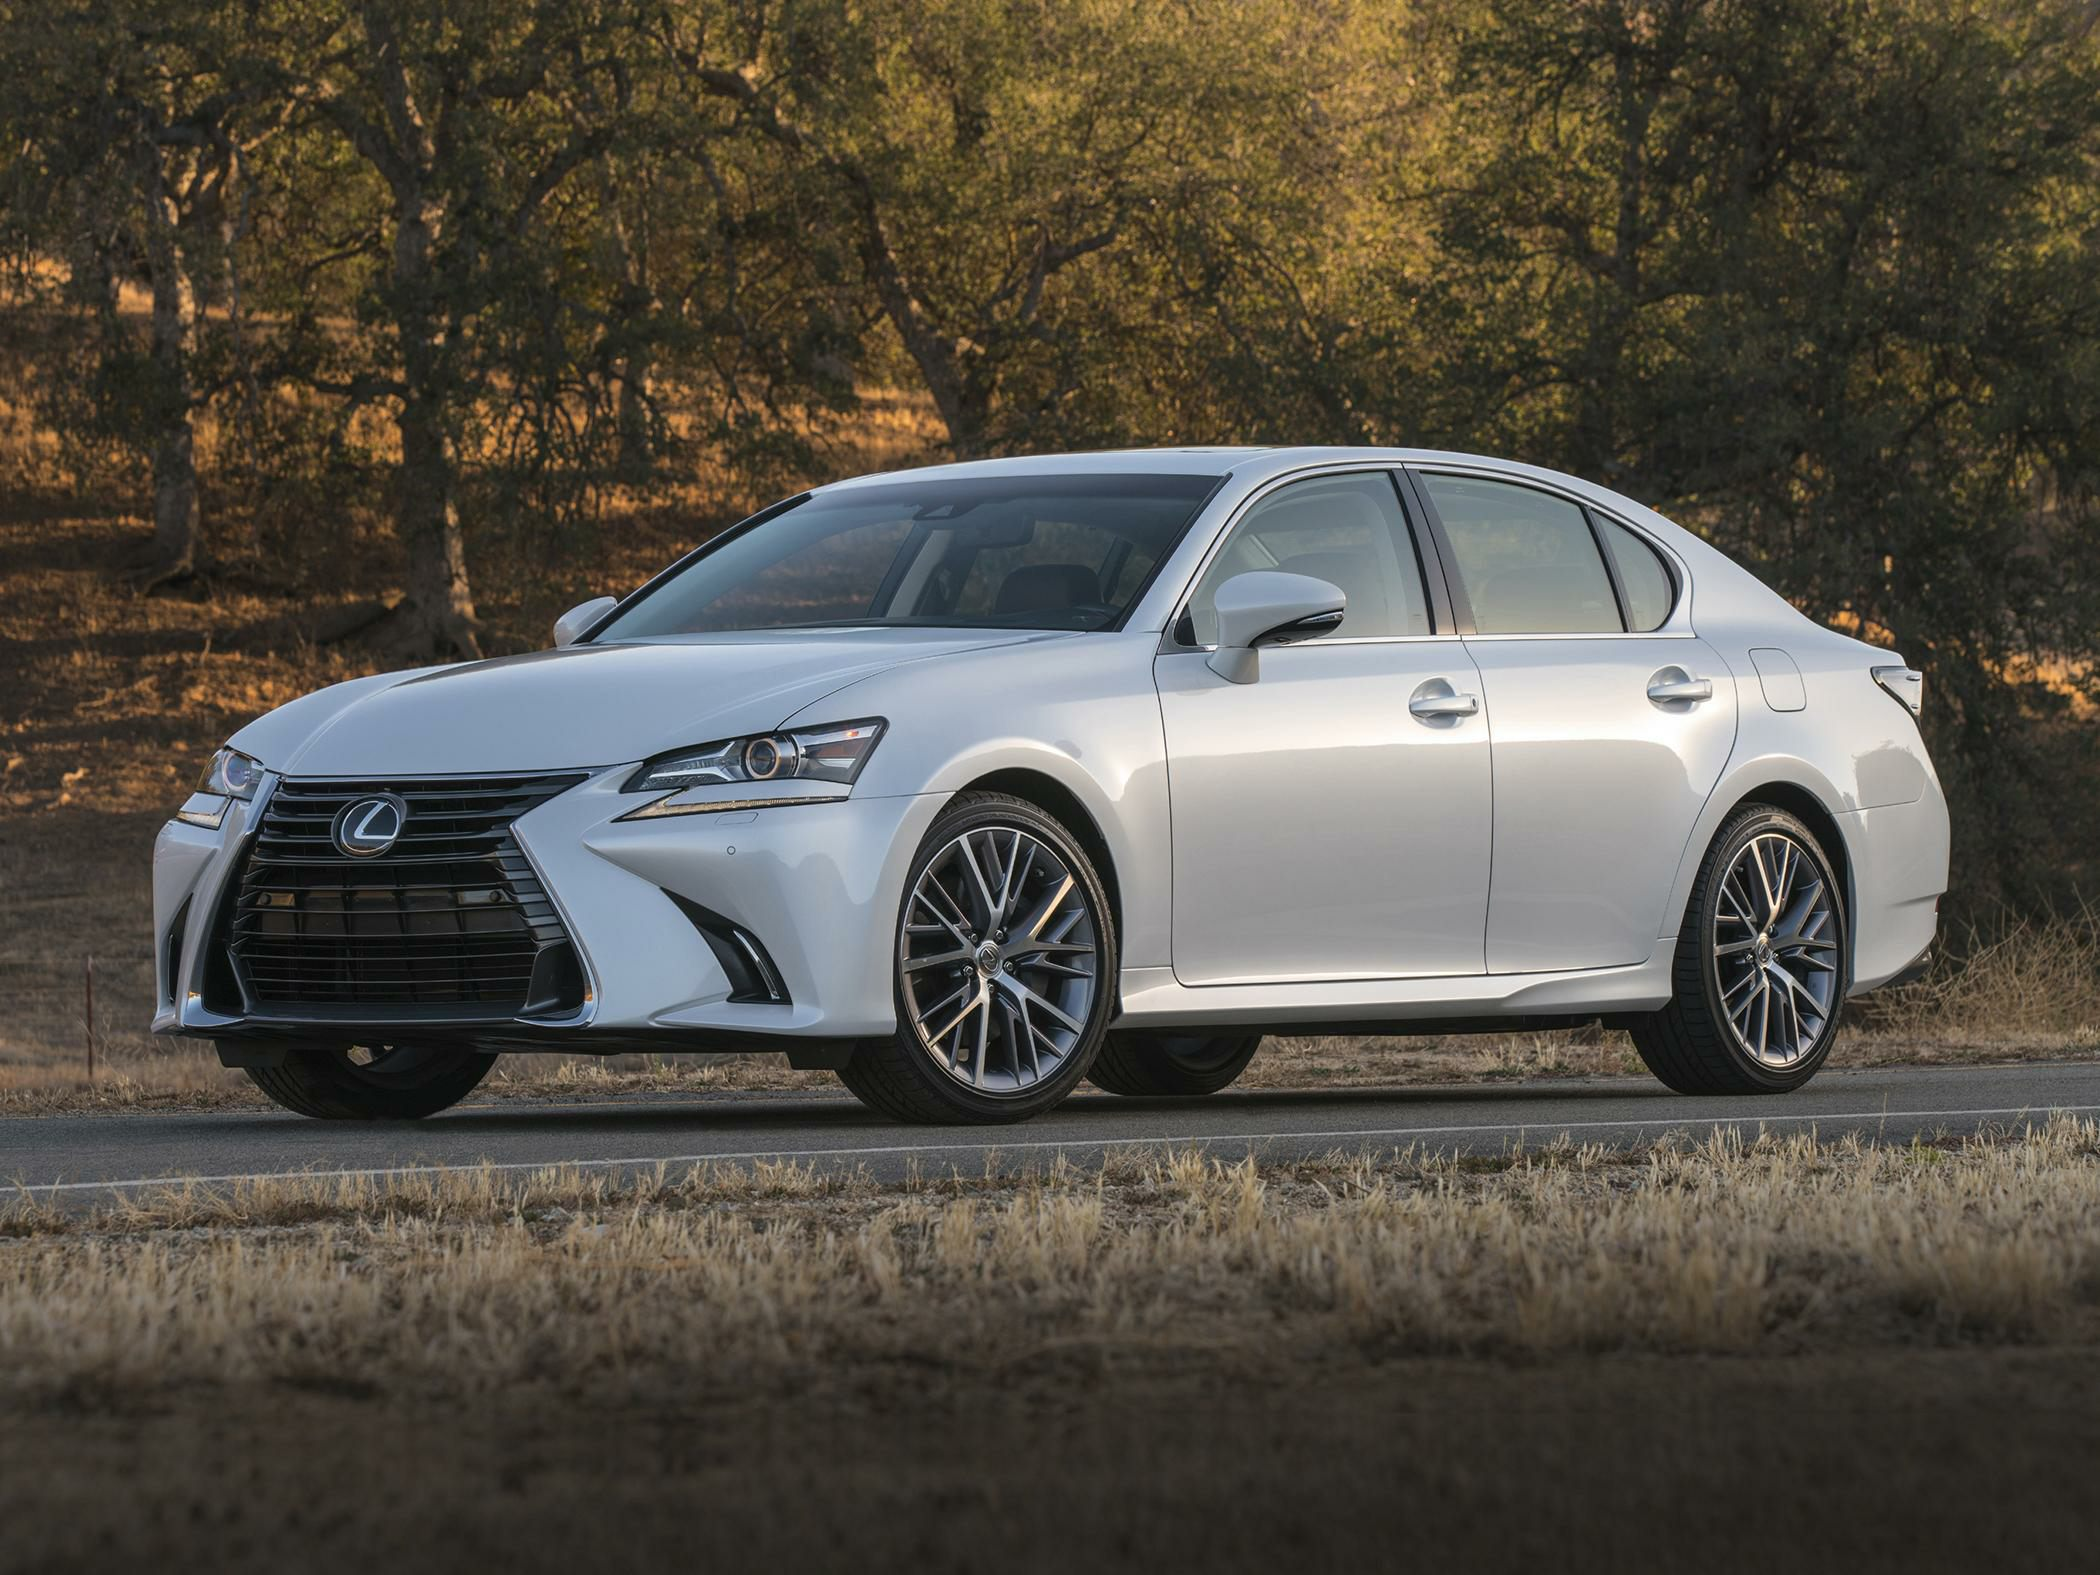 2018 Lexus GS 350 Deals Prices Incentives & Leases Overview